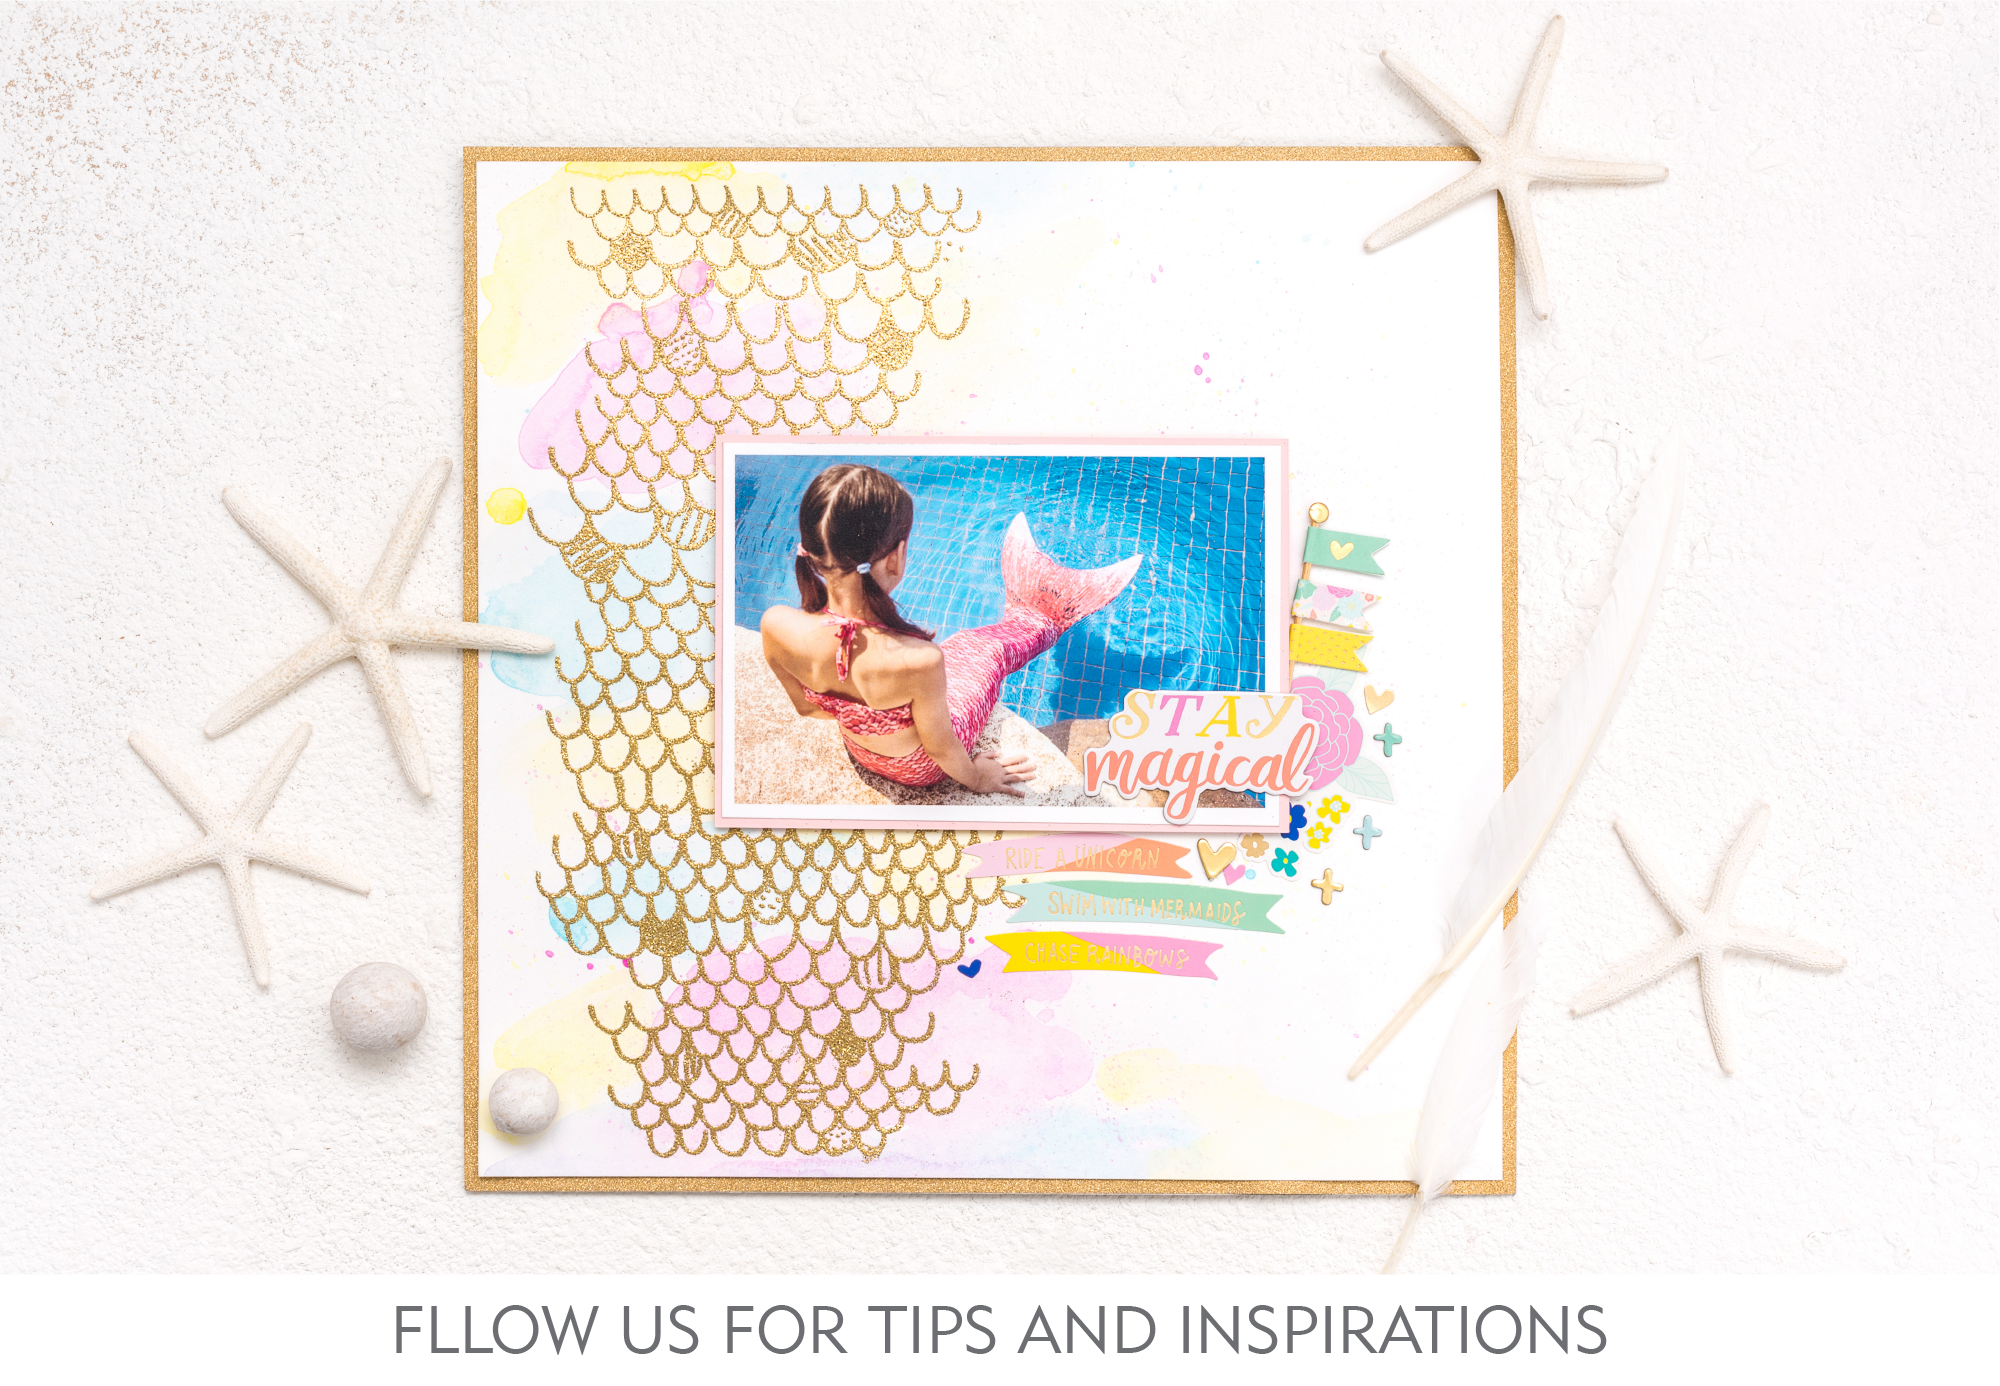 DL_LandingPage_9-StayInspired